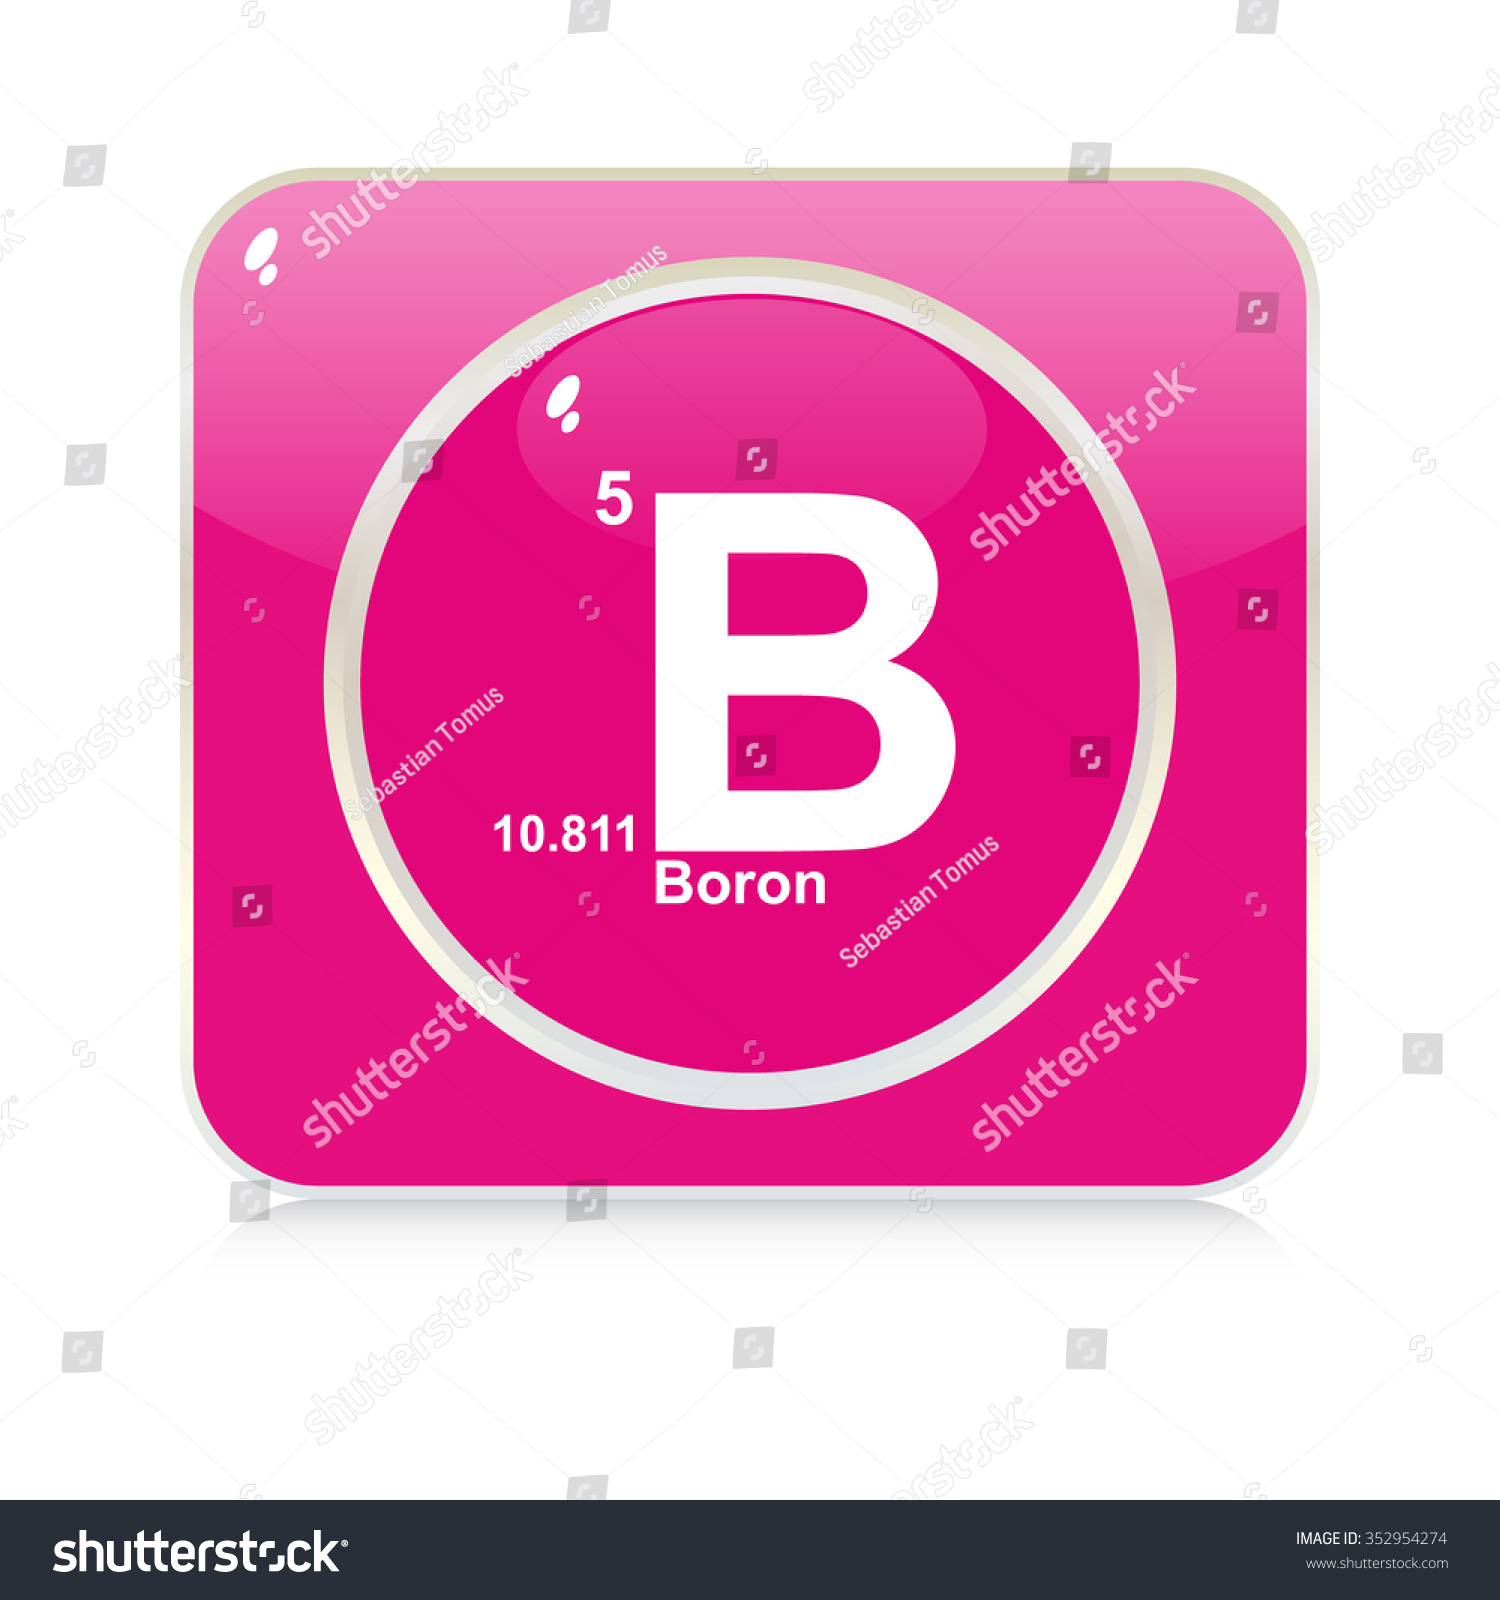 The symbol of boron images symbol and sign ideas boron chemical element button stock vector 352954274 shutterstock boron chemical element button buycottarizona buycottarizona